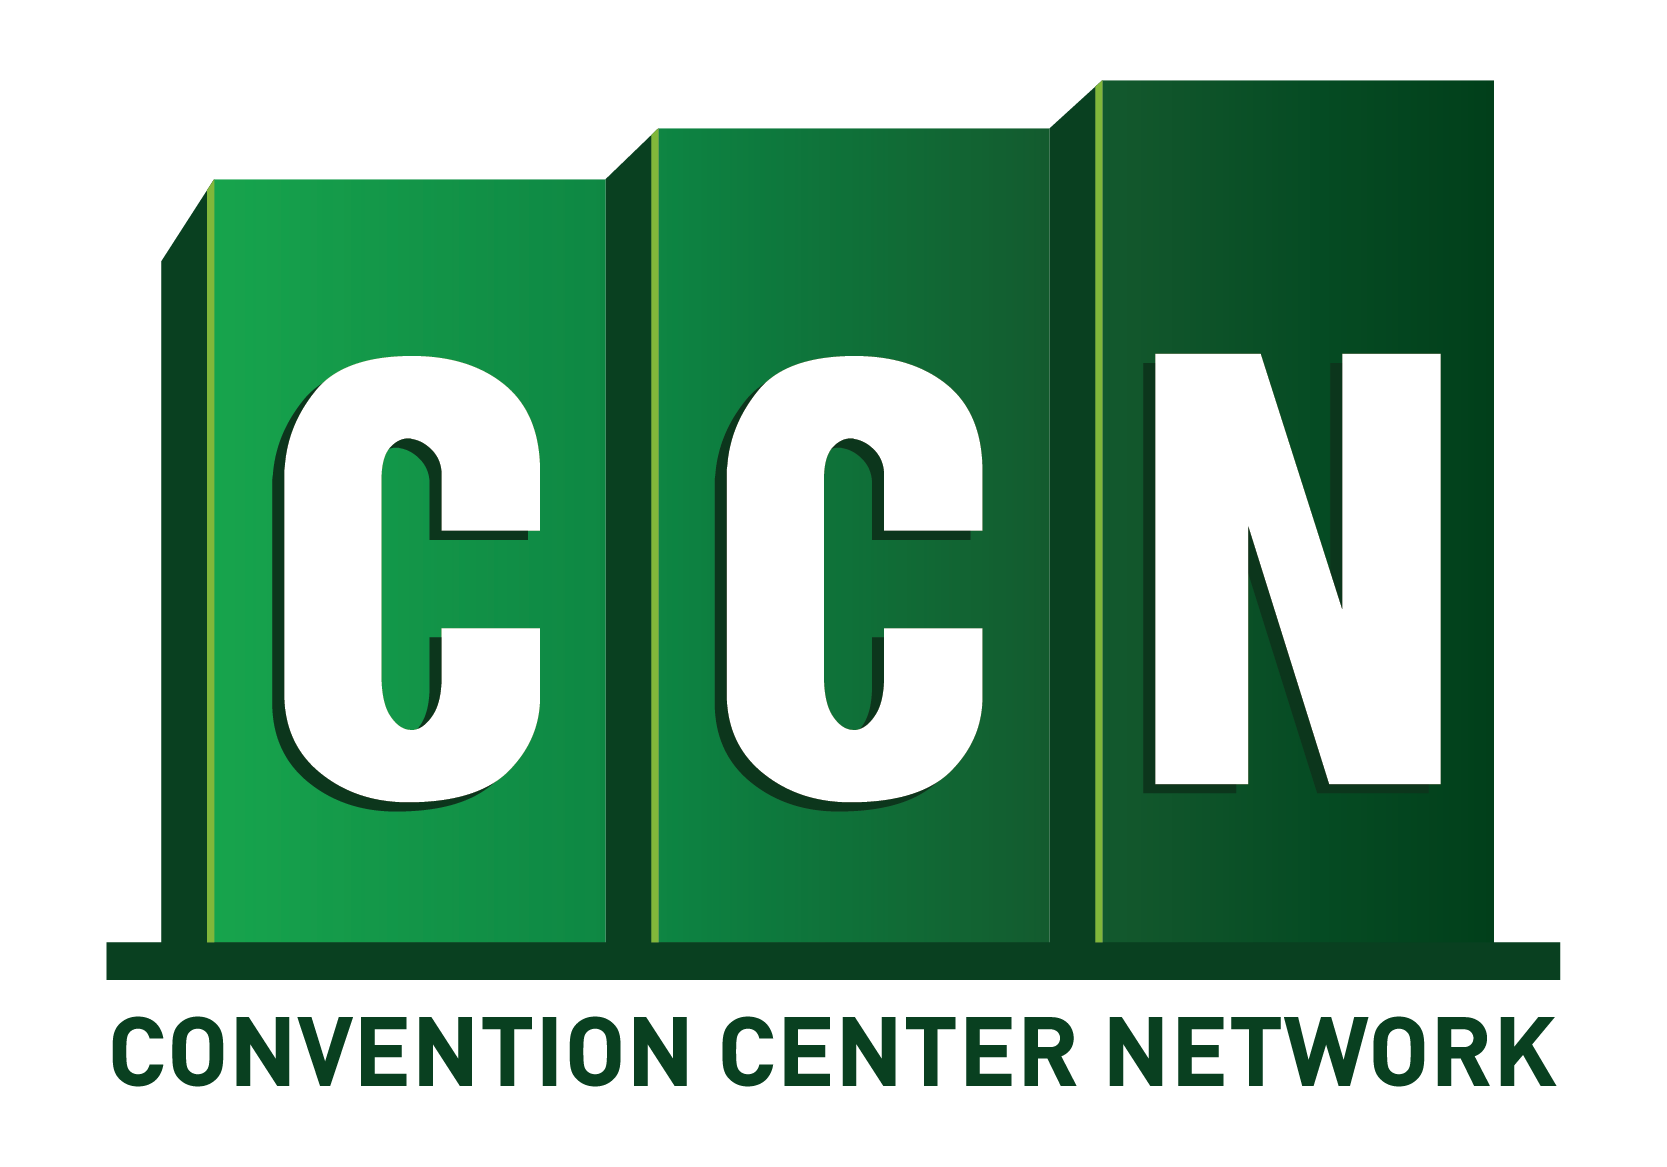 CCN - Convention Center Network